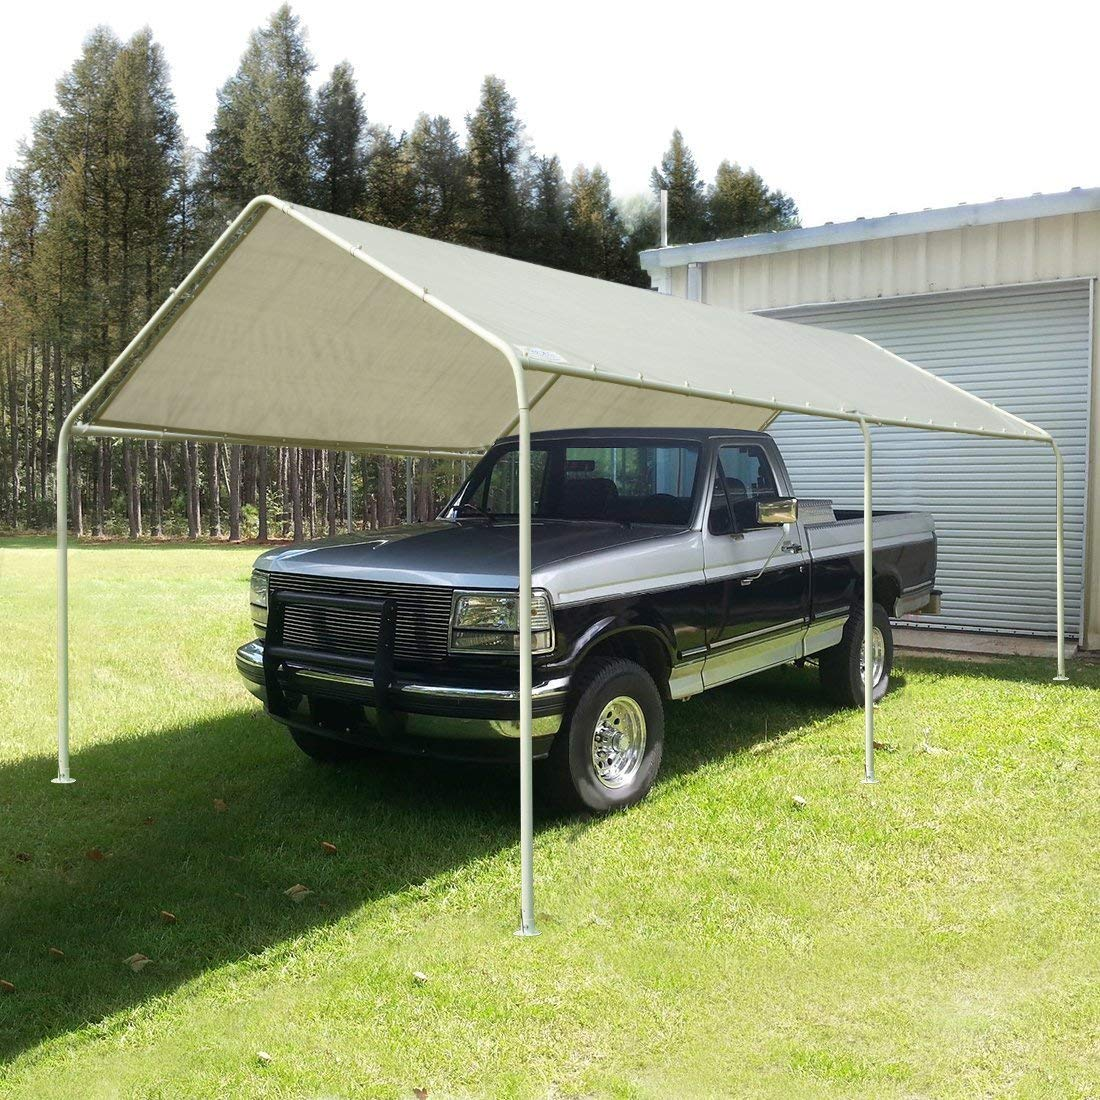 Quictent 20ft x 10ft heavy duty Carport Canopy Party Wedding Tent